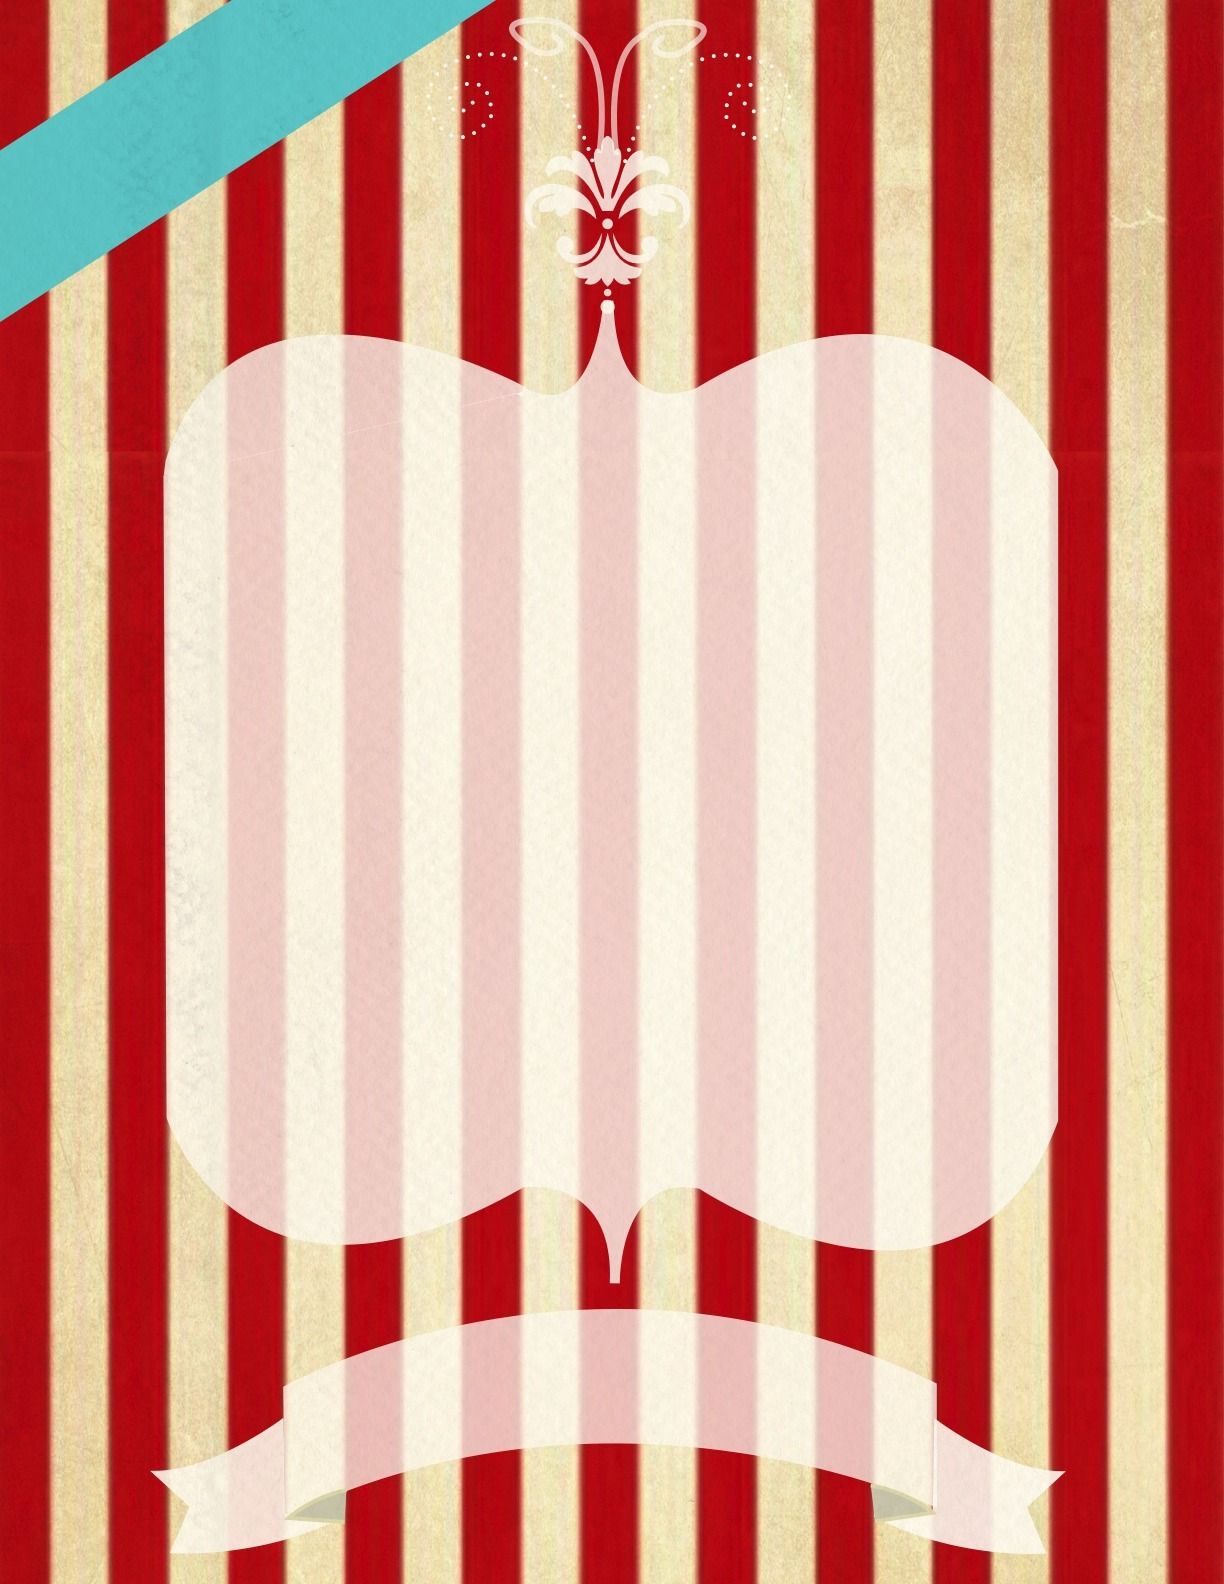 free circus printable posters would you like my blank invite for